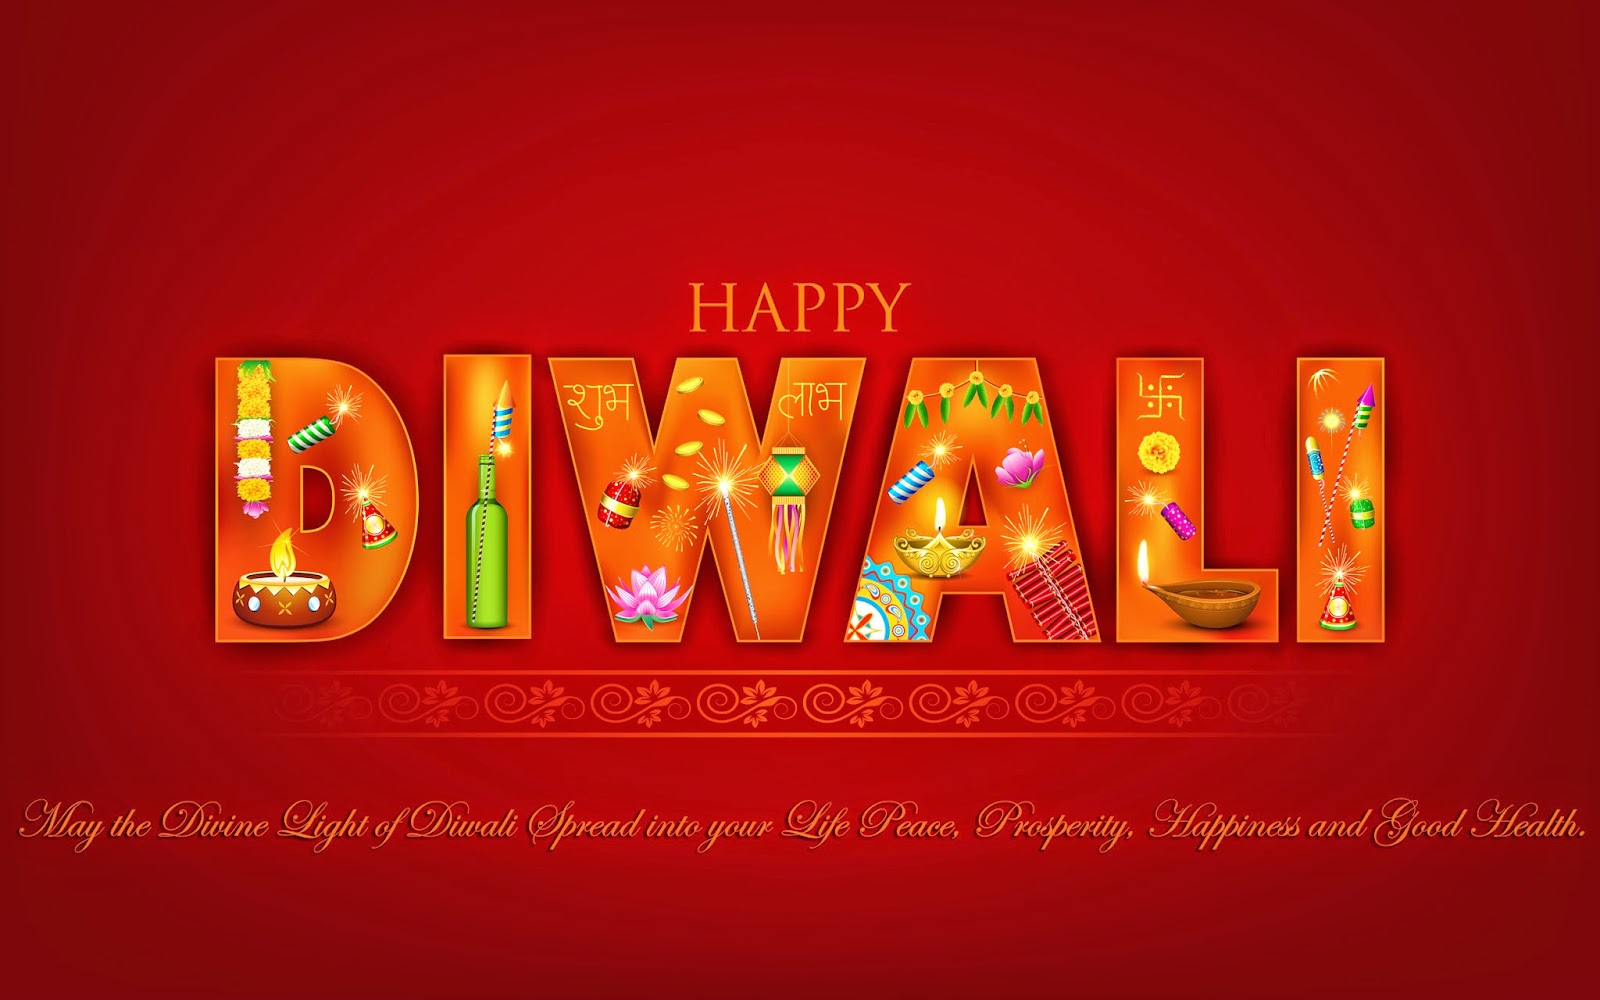 happy diwali with crackers image